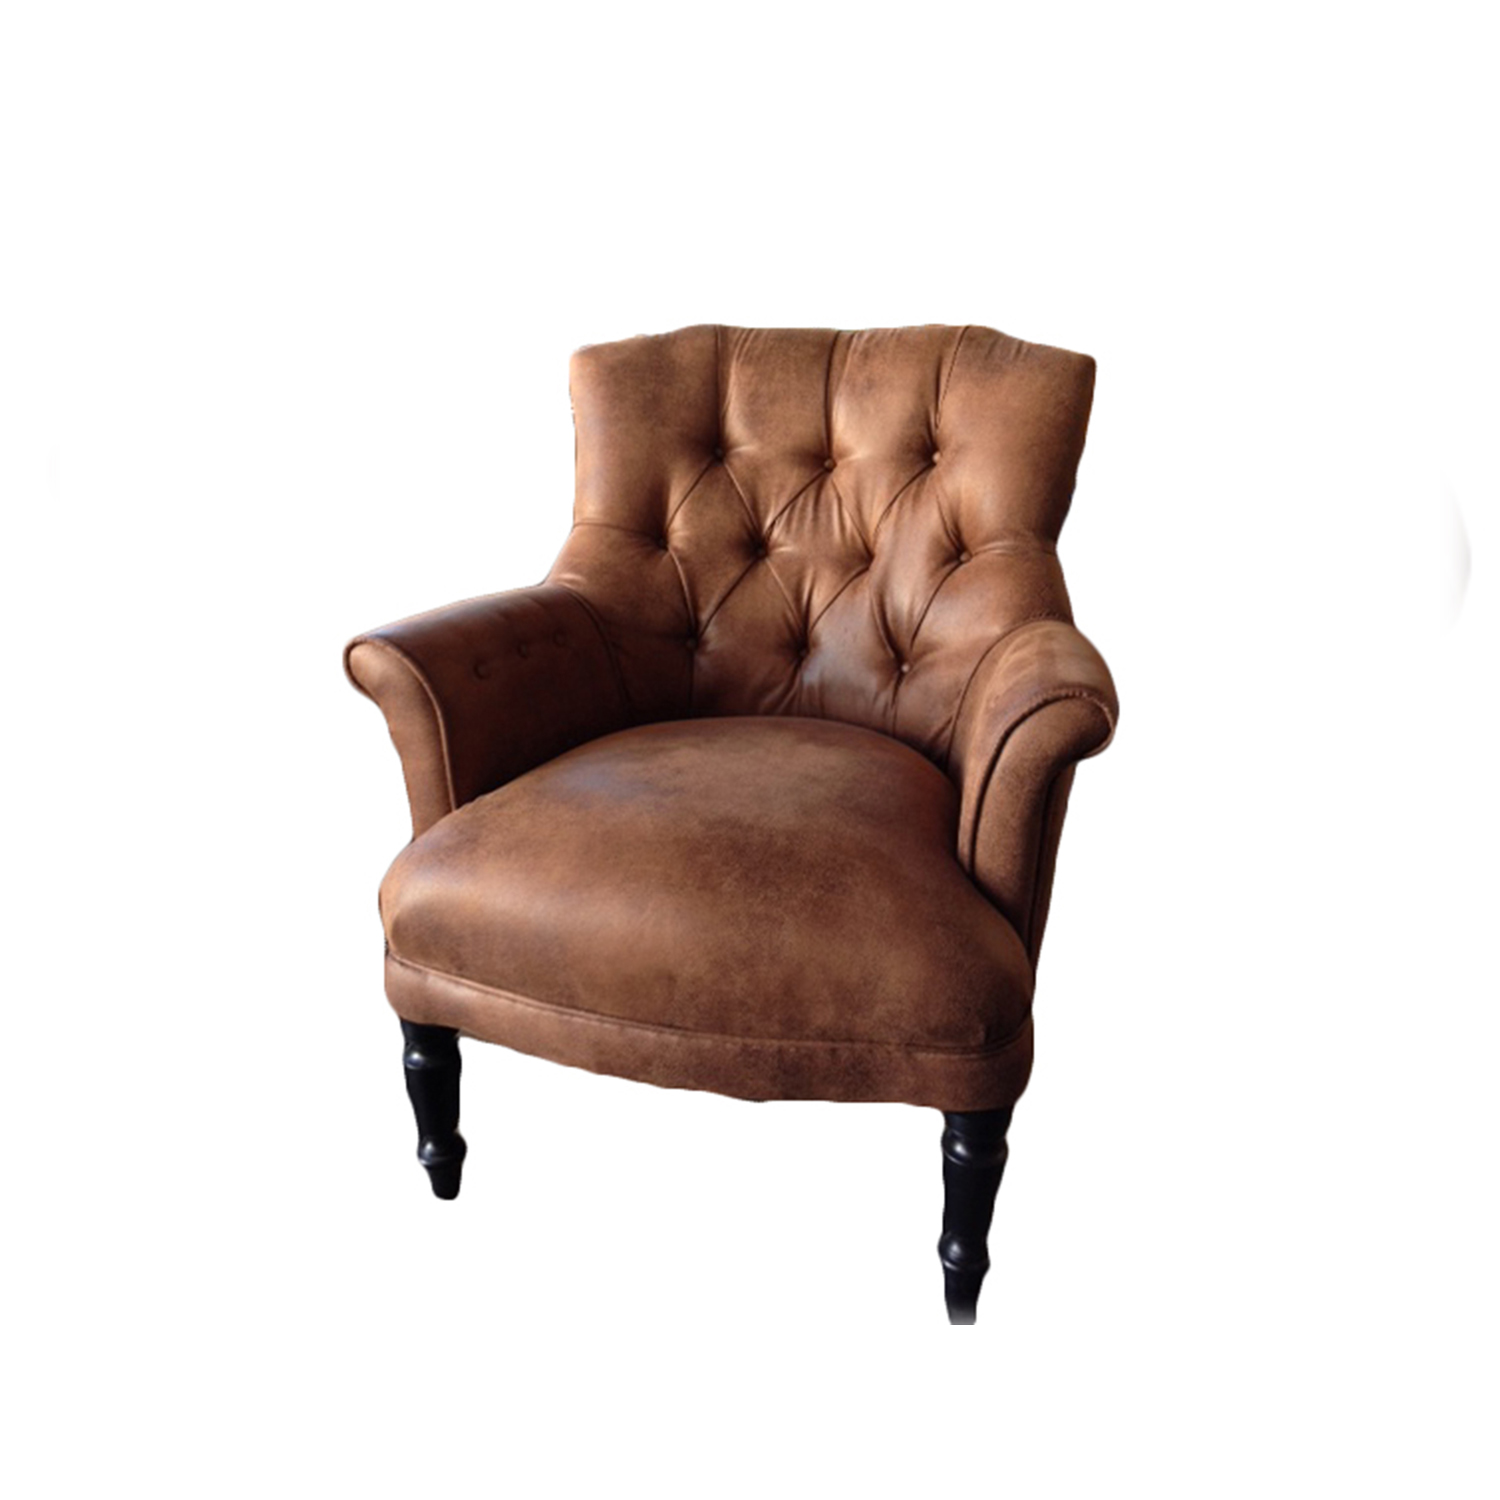 Unique_design_wooden_faux_leather_single_sofa Industry Home Furniture  Tufted Faux Leather Armchair Wonderful